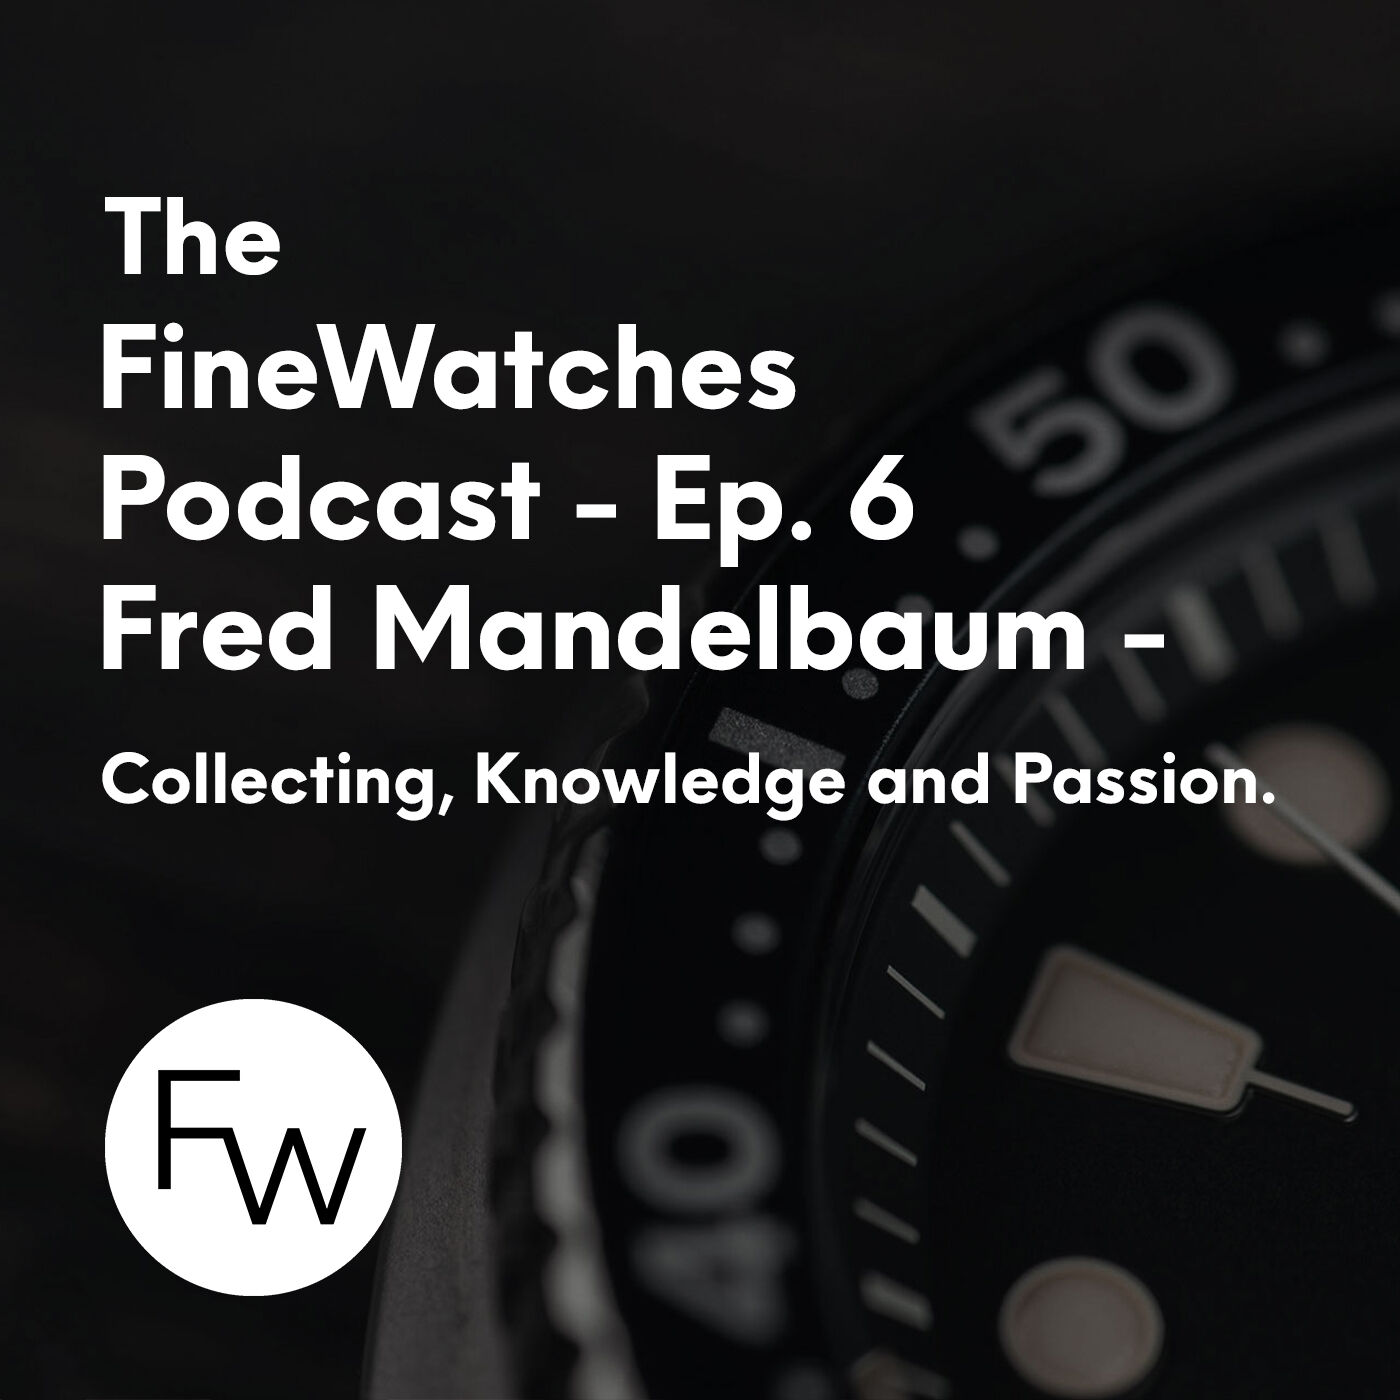 Collecting, Knowledge and Passion - Fred Mandelbaum